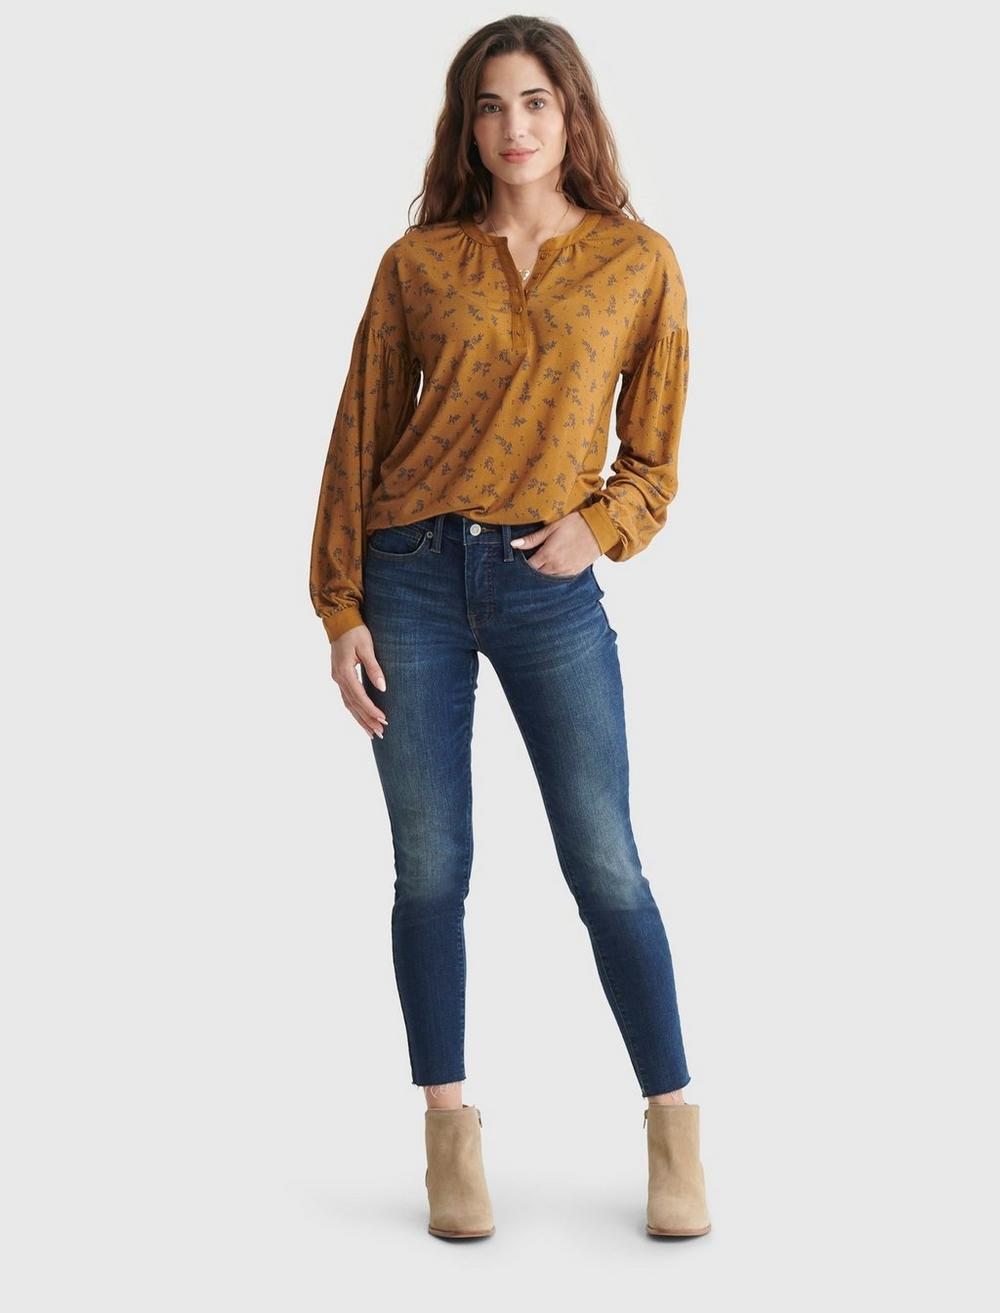 BUTTON-ACCENTED V-NECK TOP, image 3